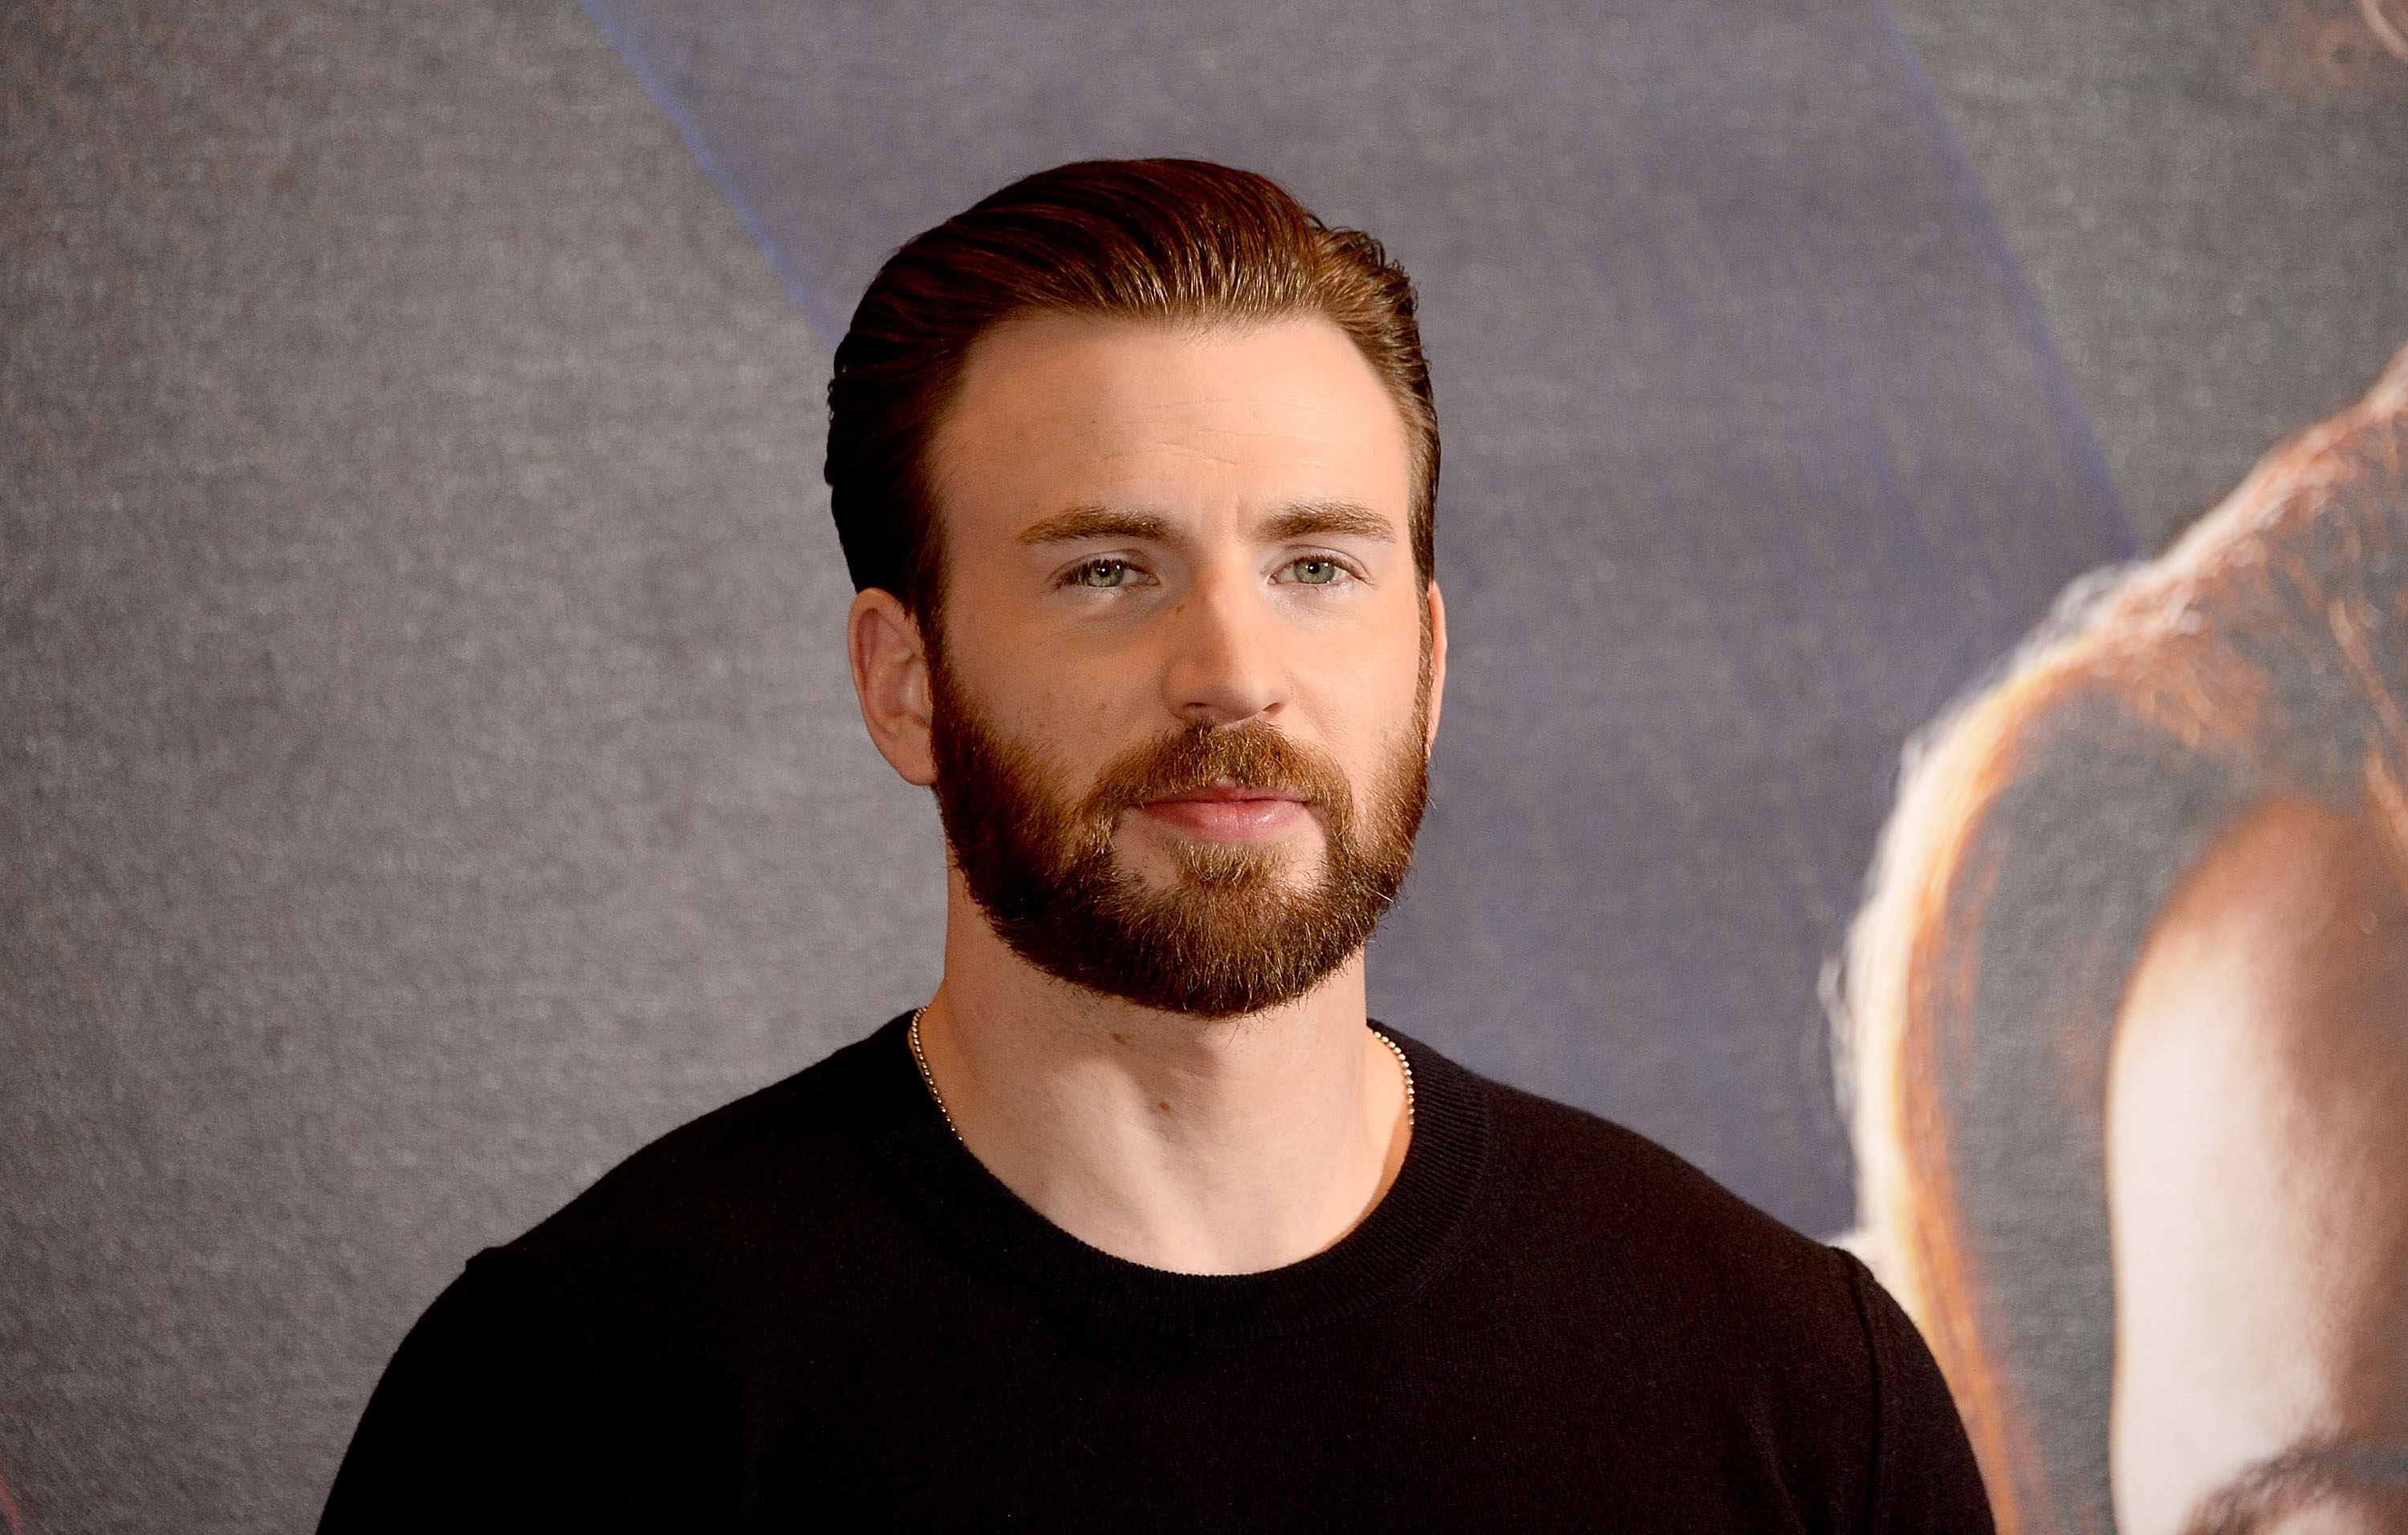 Chris Evans does pushups with his dog, and we're all winners